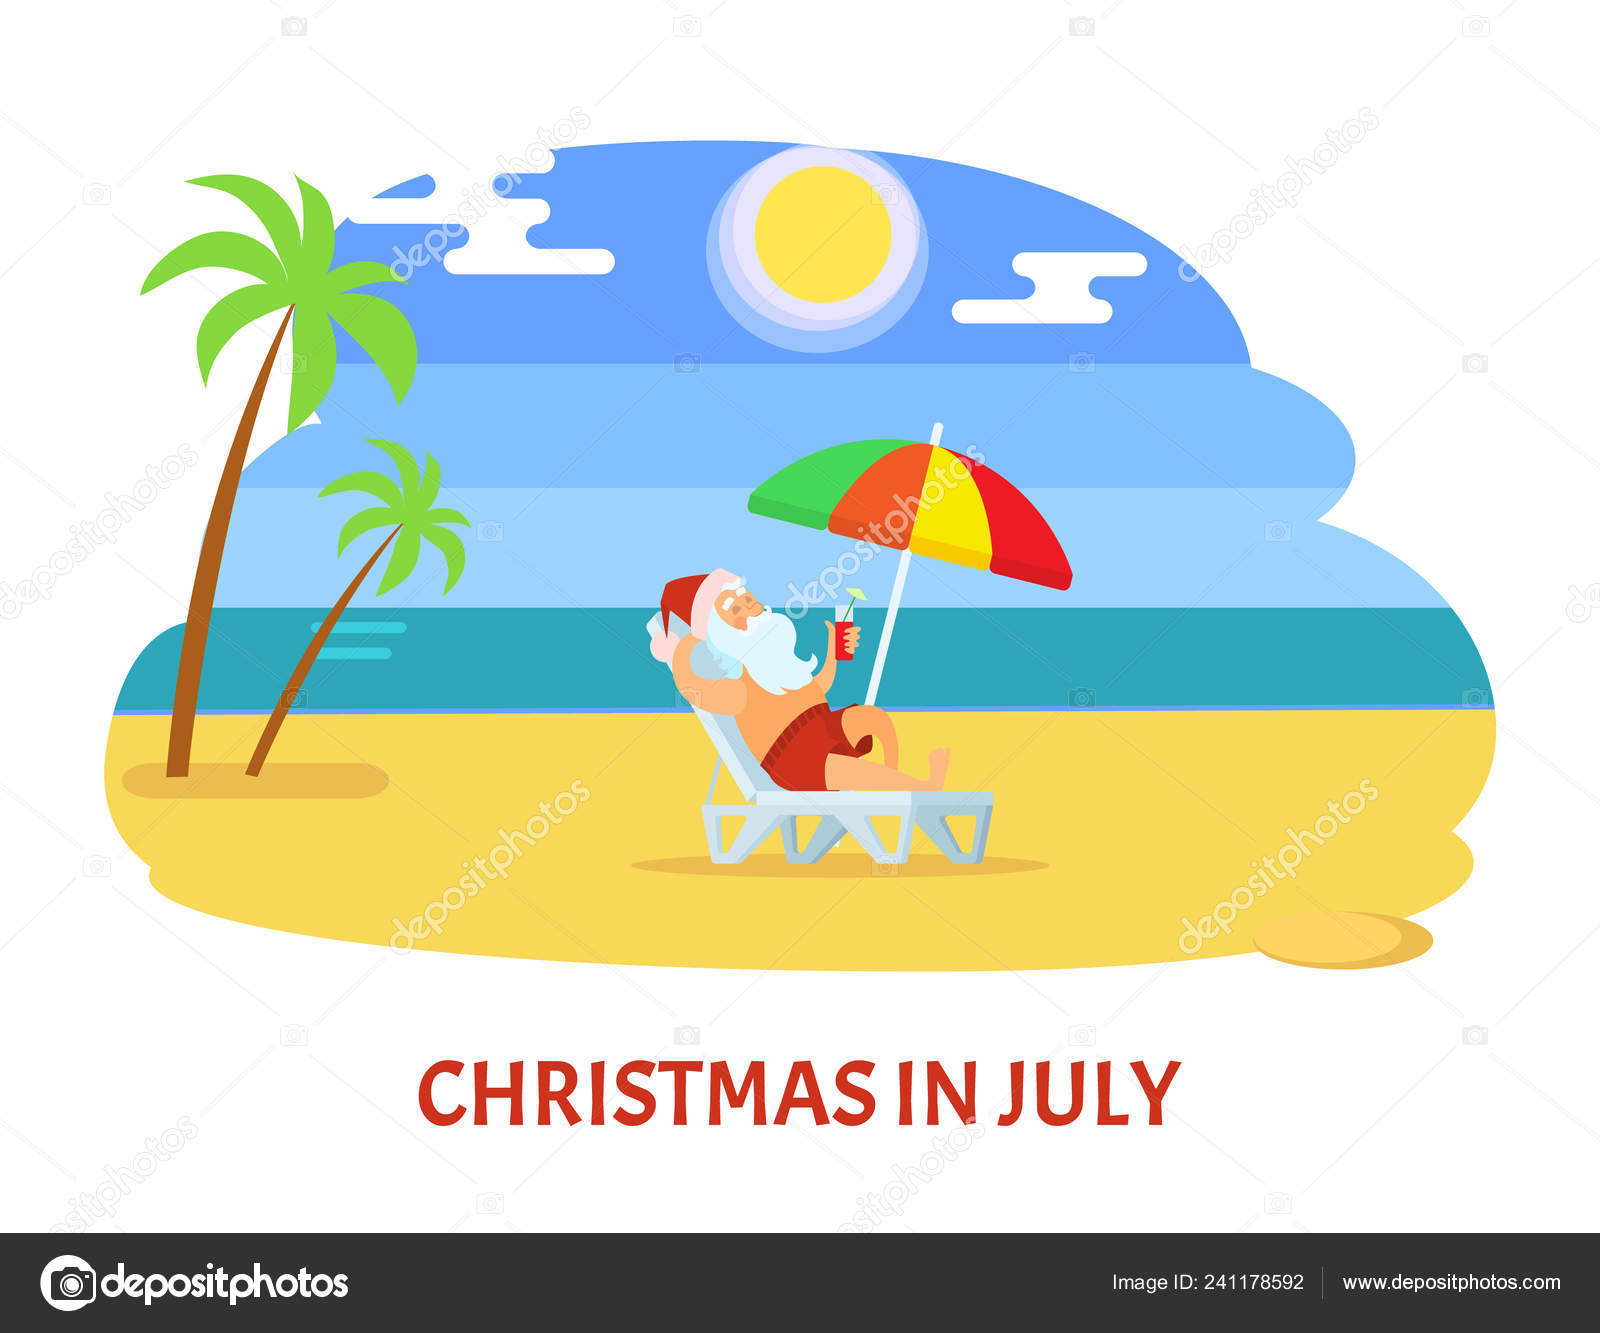 Christmas In July Clipart Free.Christmas In July Relaxing Holiday On Beach Vector Stock